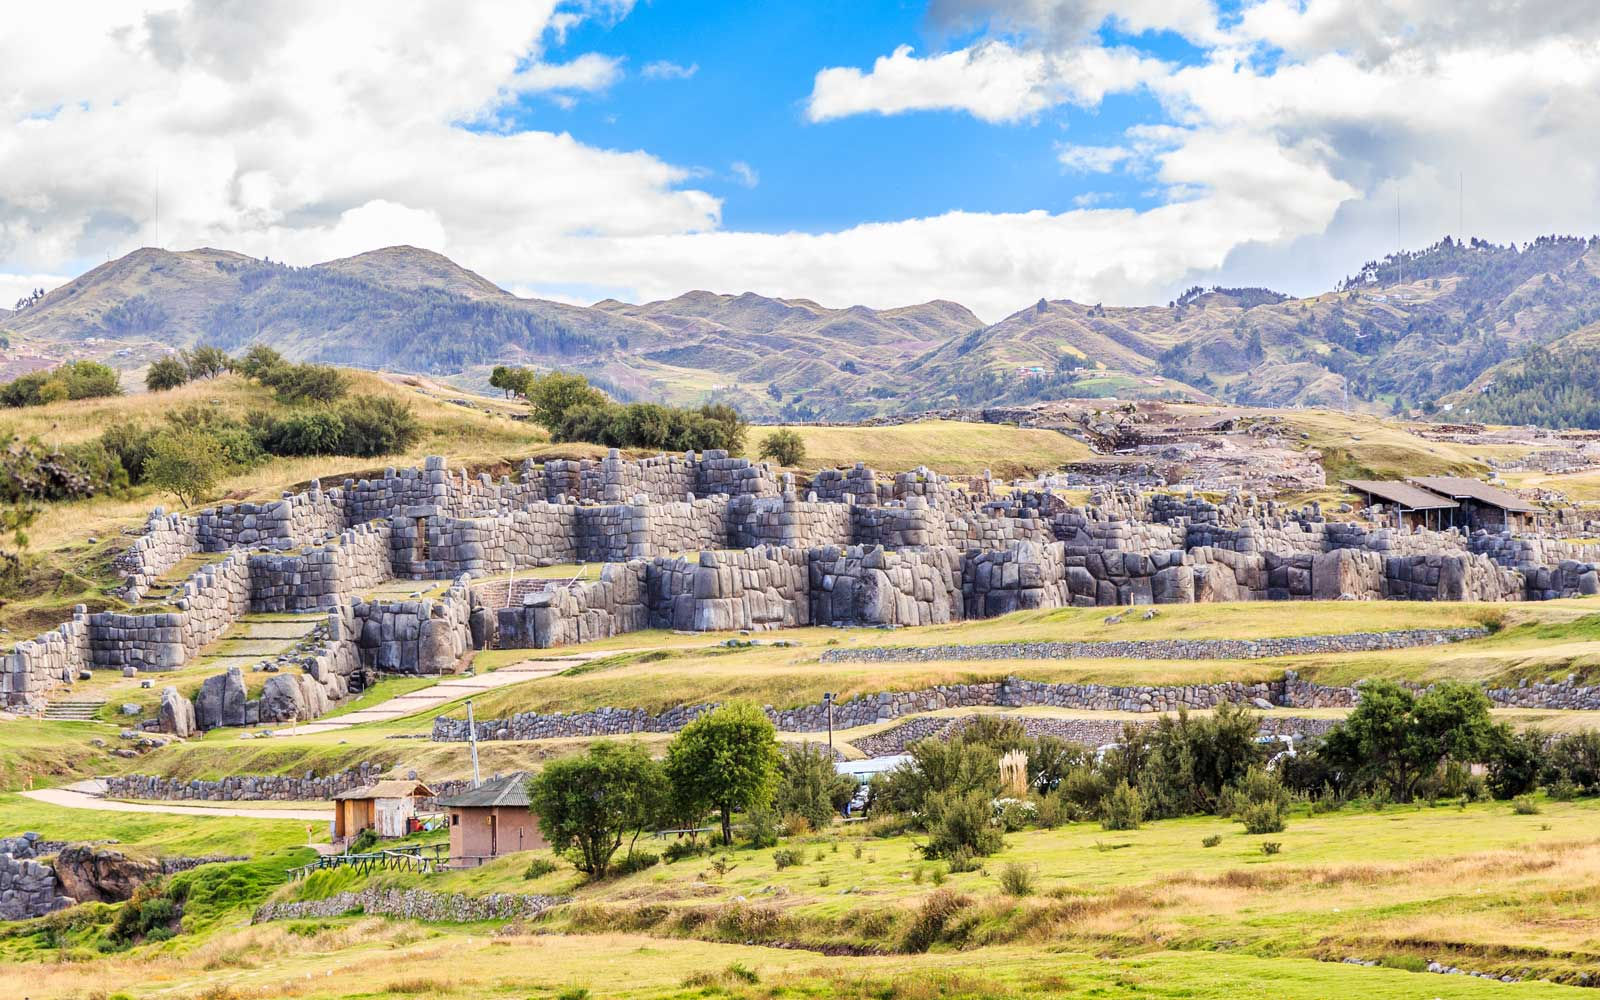 Ruins of Inkan fortress Saksayhuaman with mountains in background, Cuzco, Peru